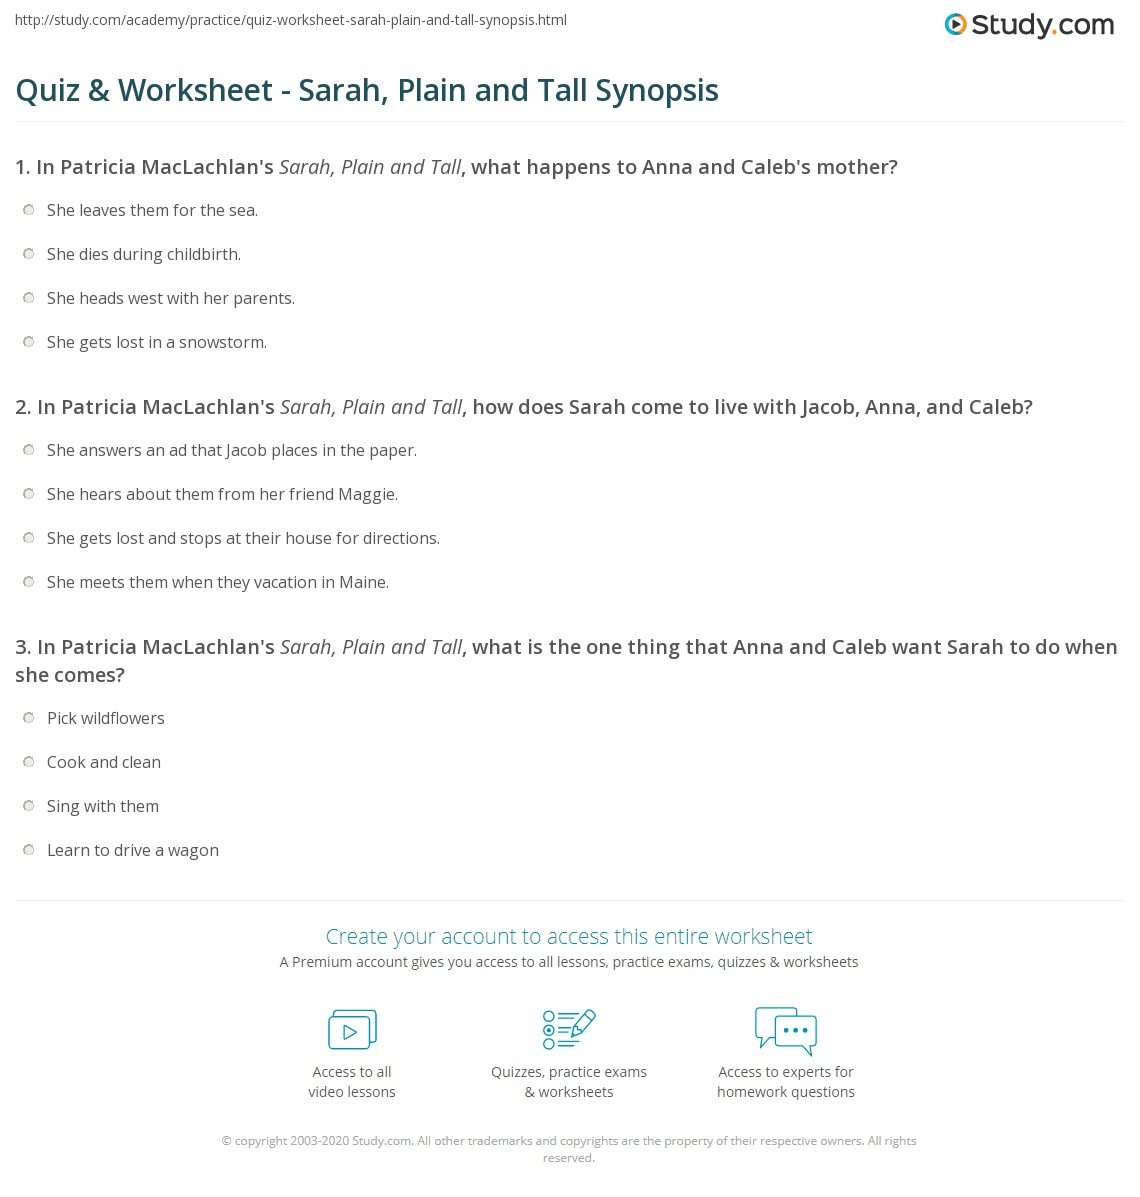 Quiz Worksheet Sarah Plain and Tall Synopsis – Sarah Plain and Tall Worksheets